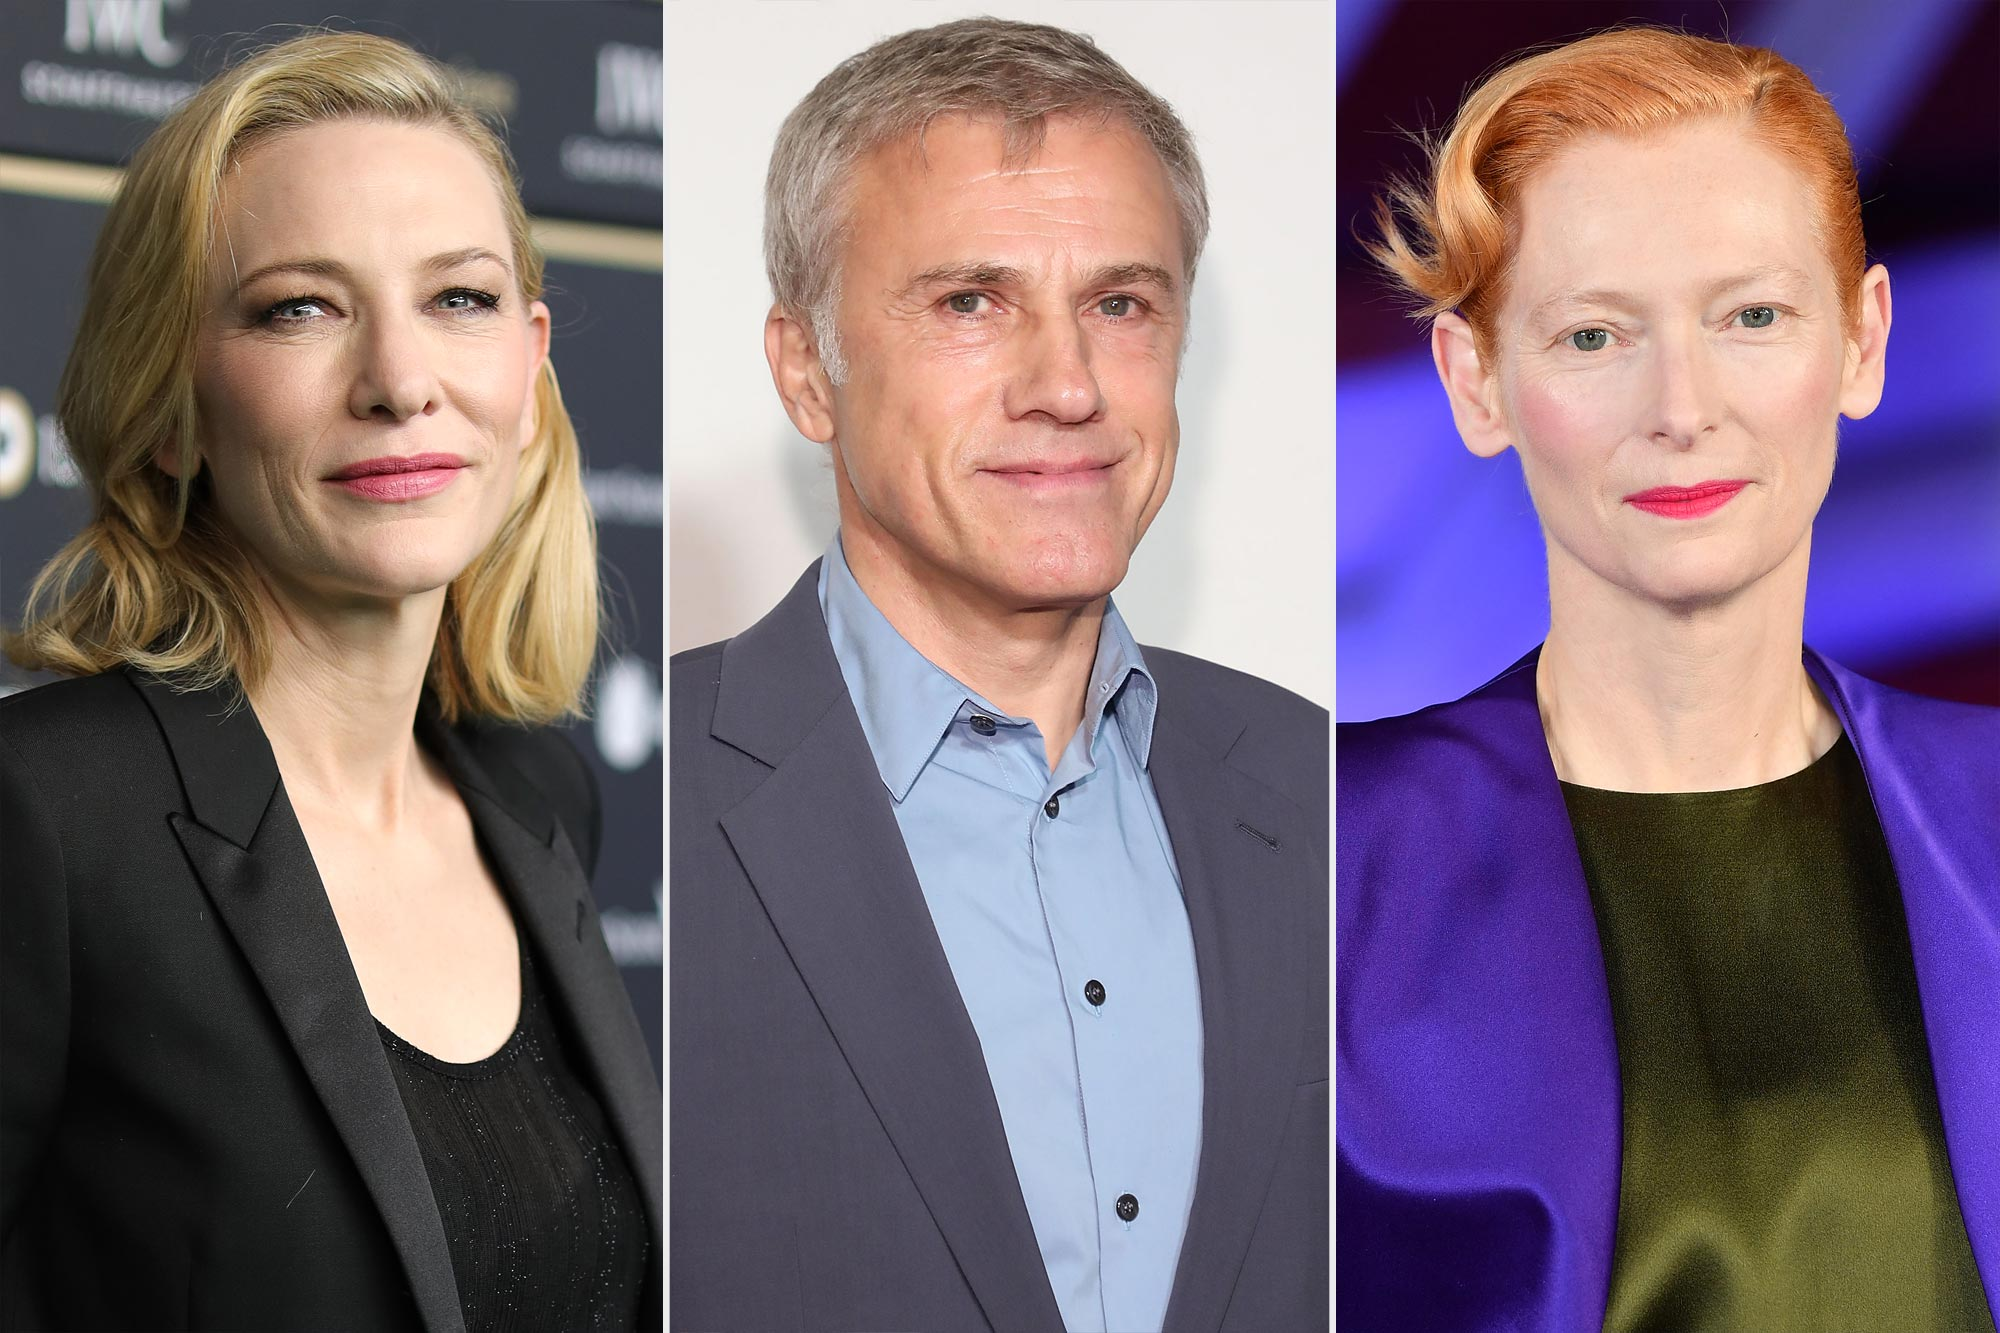 Cate Blanchett, Christoph Waltz, and Tilda Swinton